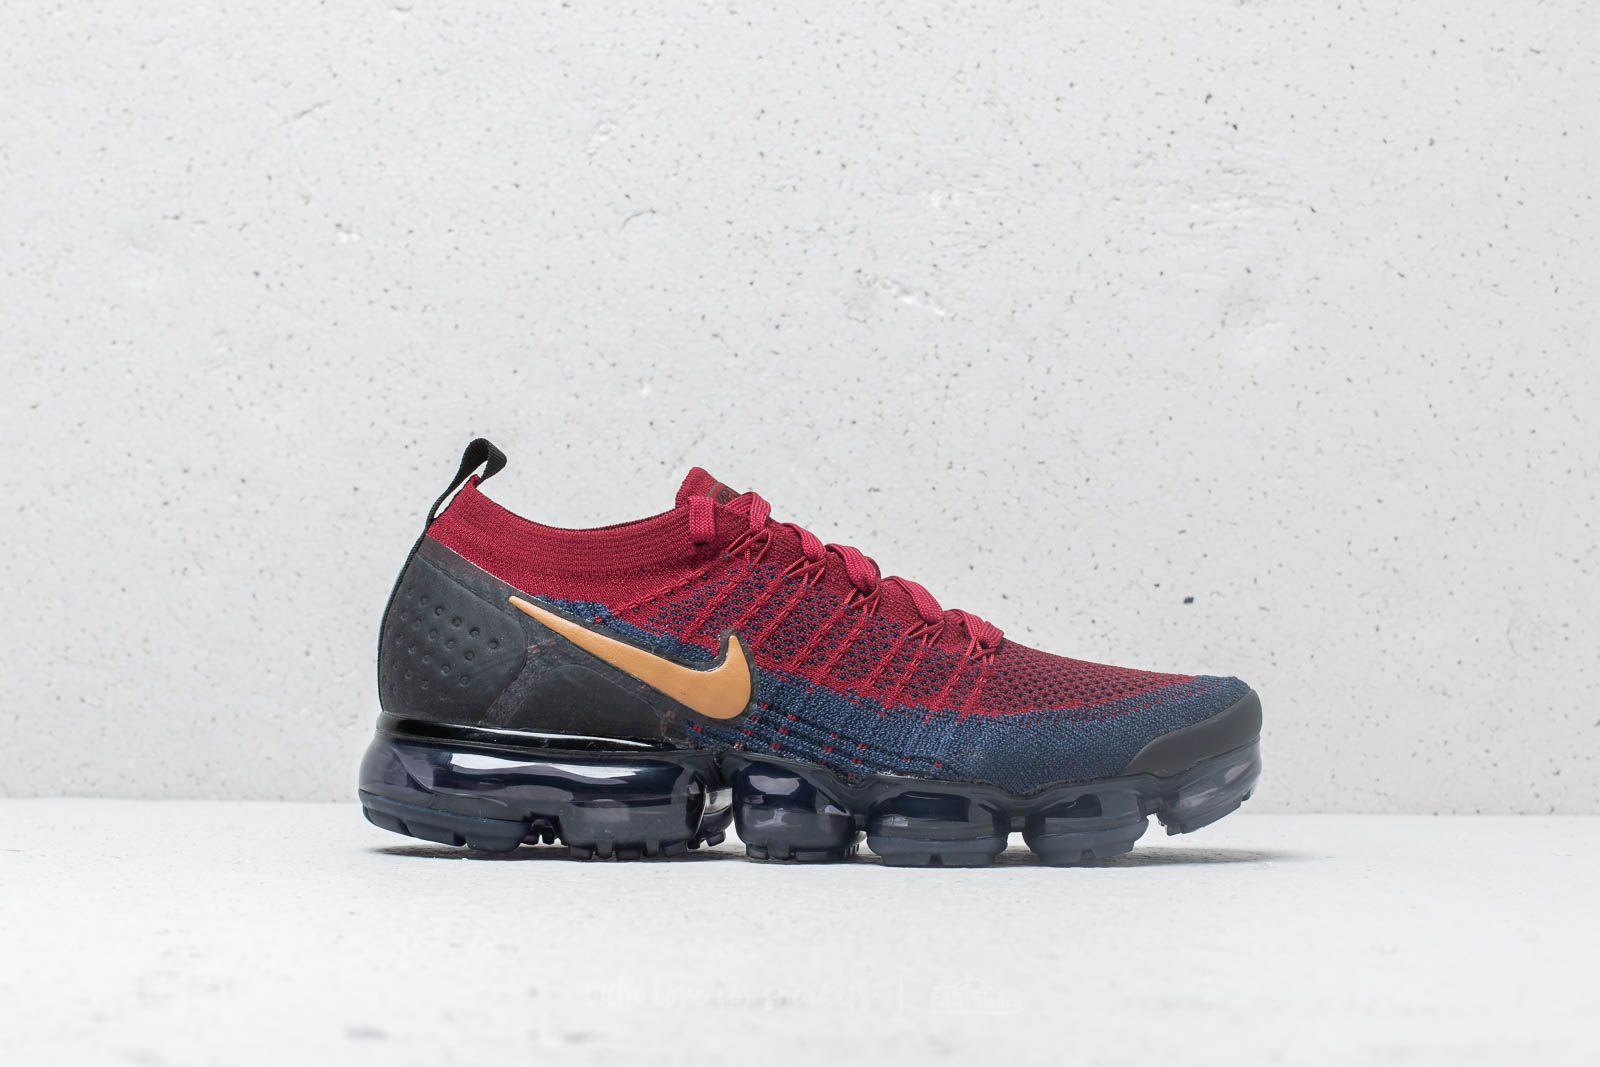 quality design 1d929 88b6a Nike Air Vapormax Flyknit 2 Team Red/ Wheat-Obsidian-Black ...